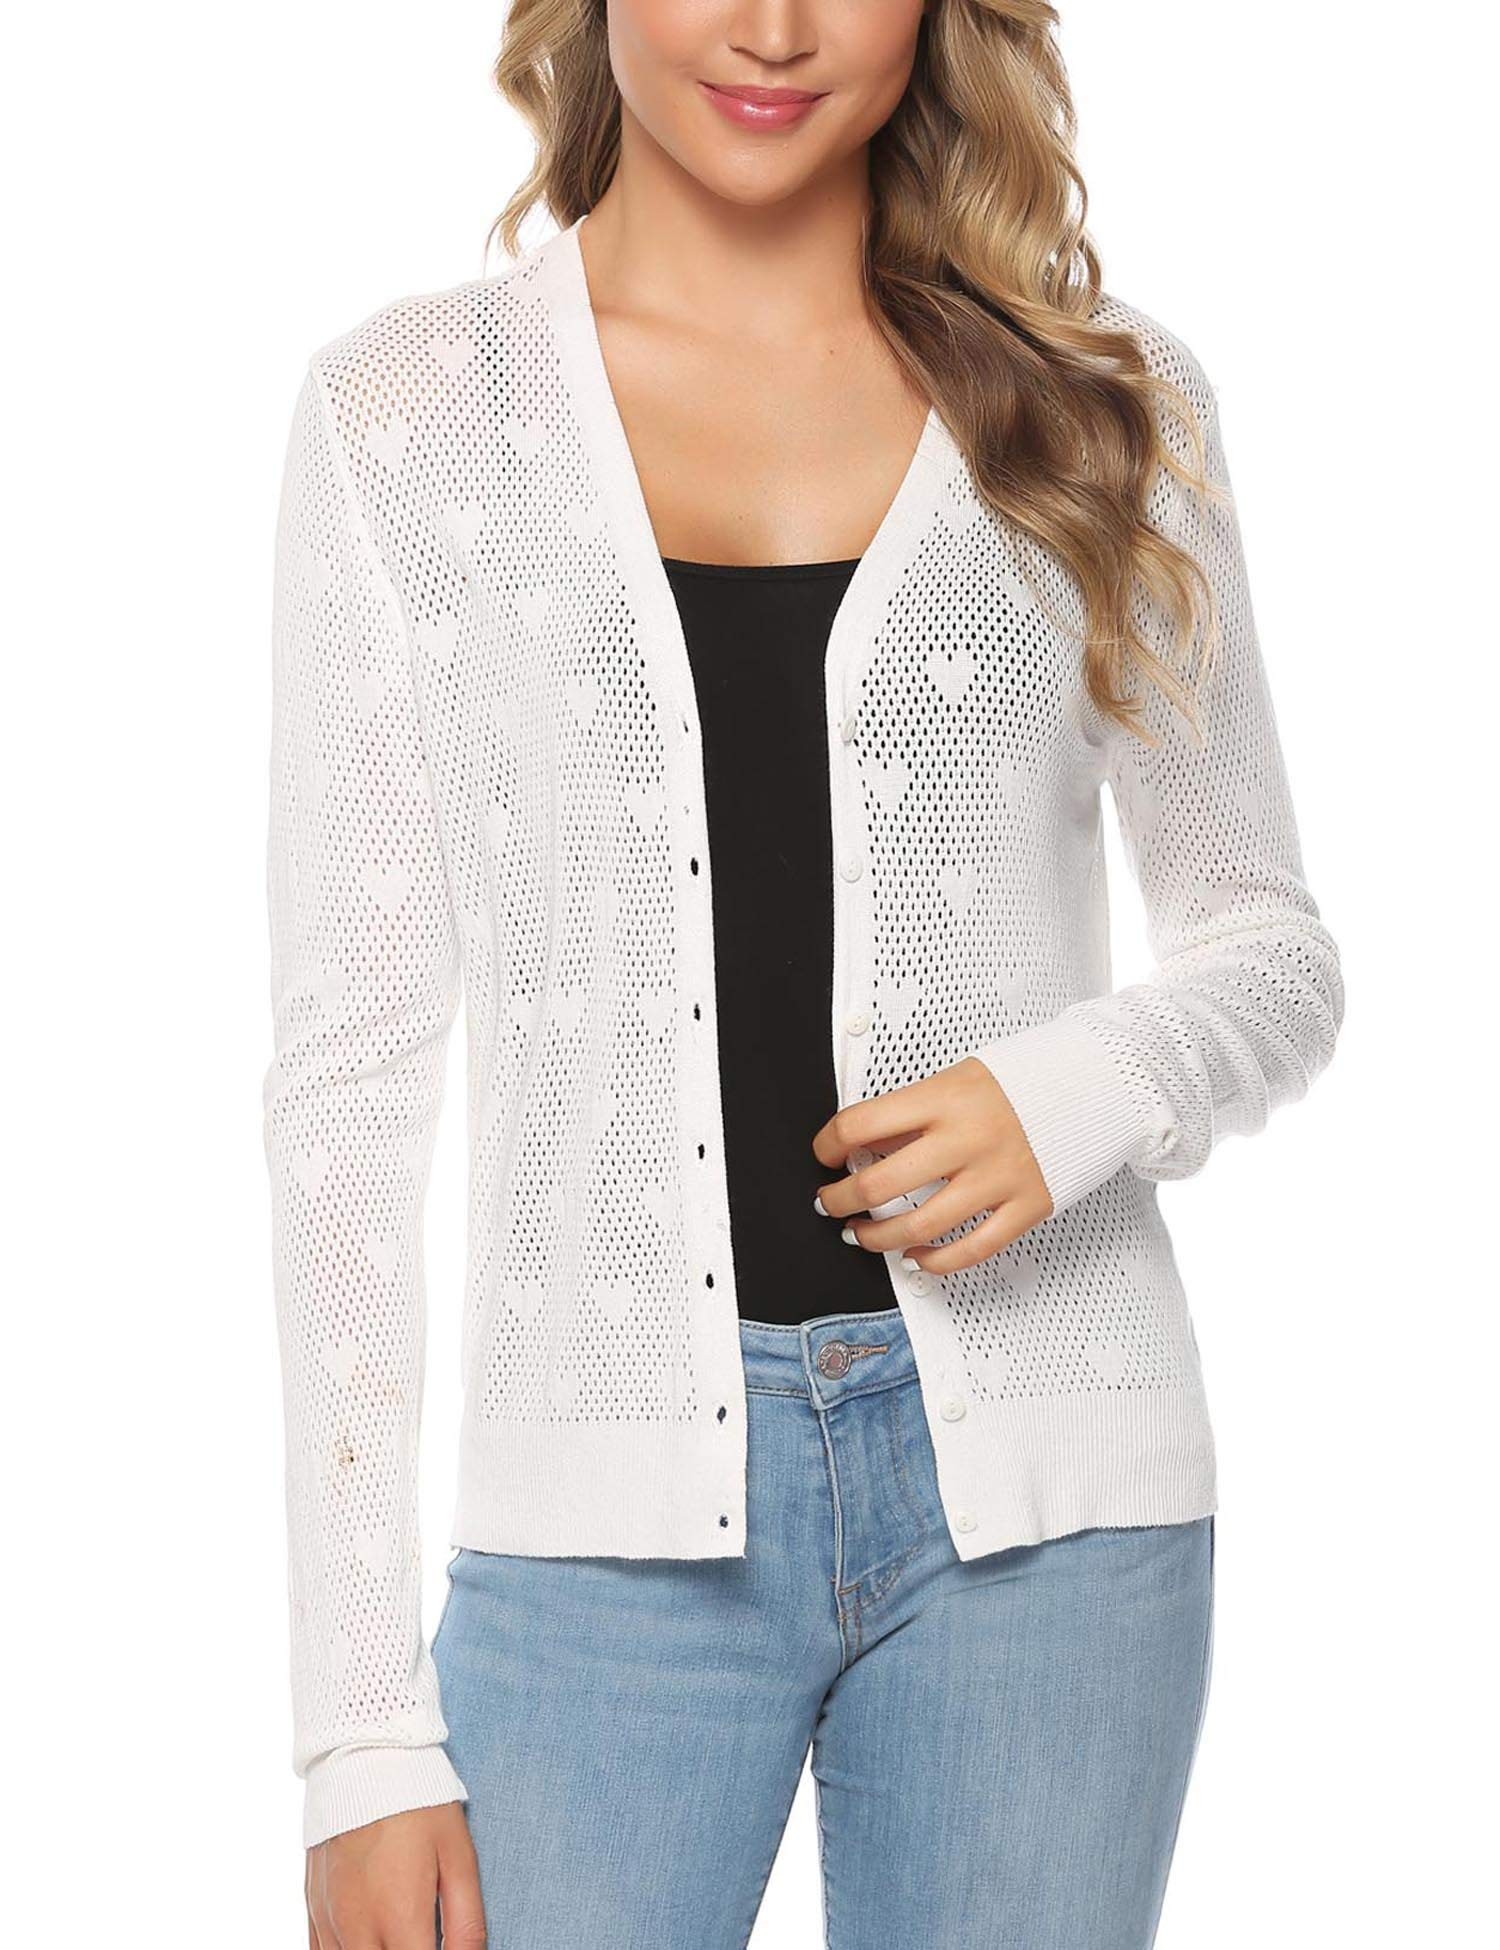 iClosam Women Knitted Bolero Shrug Long Sleeve Crochet Button Down Cardigan Sweater